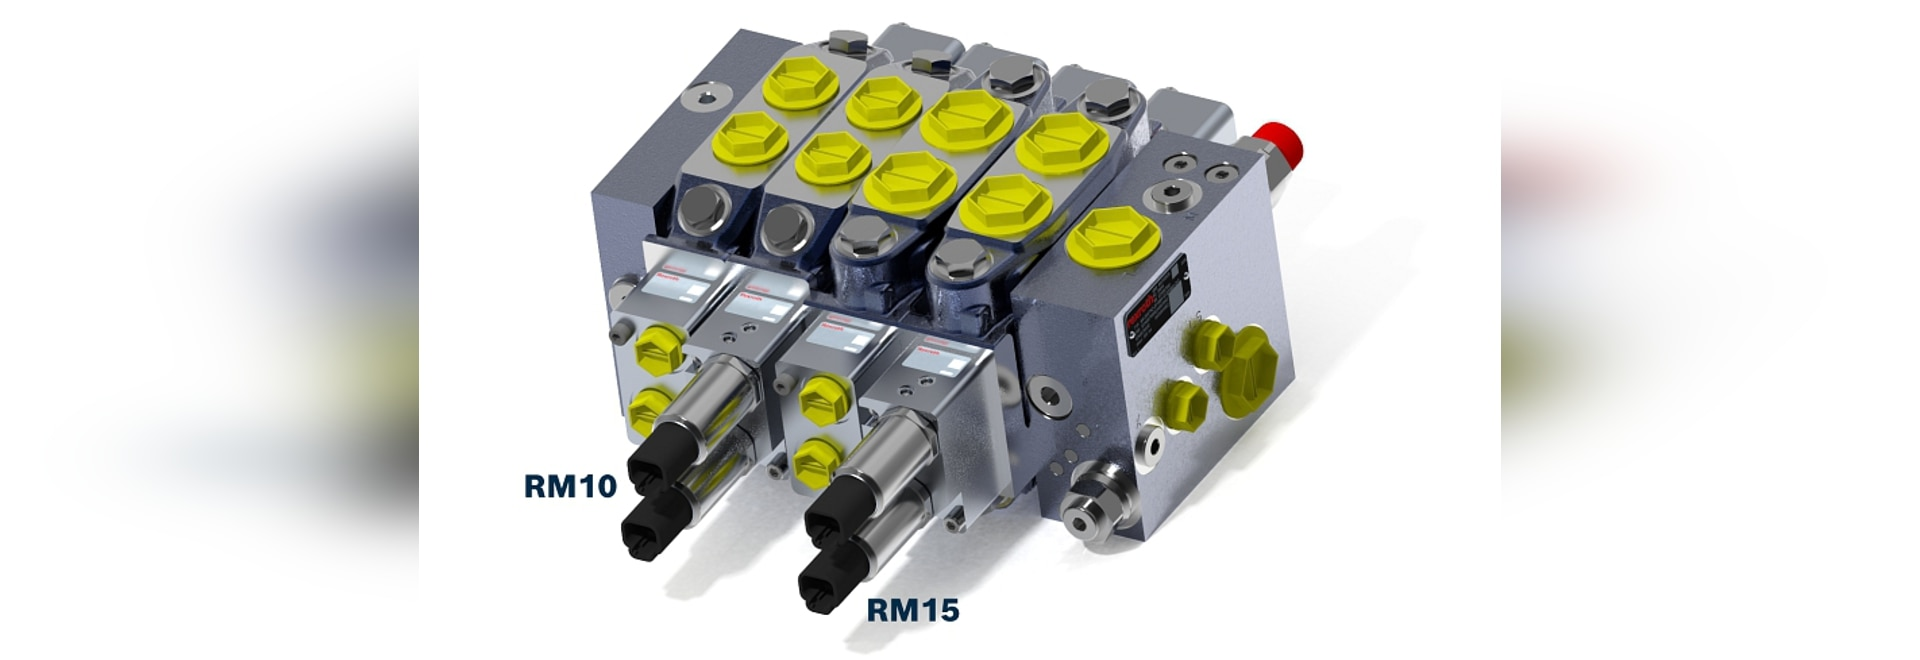 The RM10 and RM15 are compact, general purpose, multi-application load sense directional control valves.